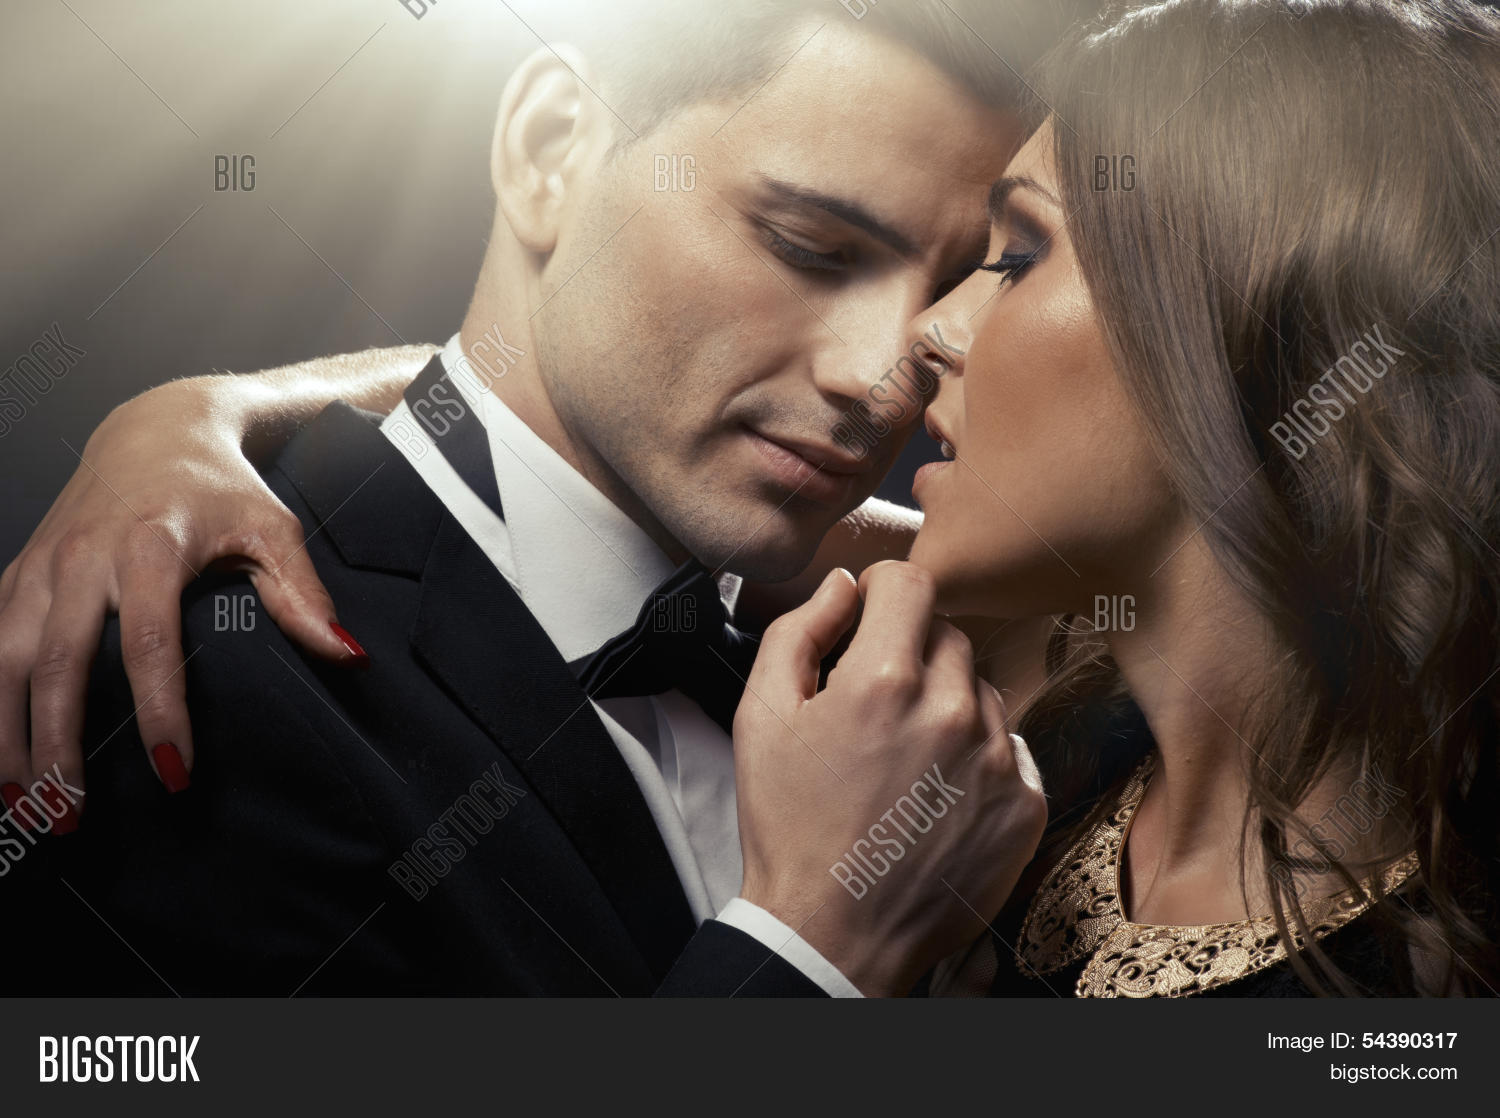 senual couples sensual portrait cute couple image photo bigstock 9514